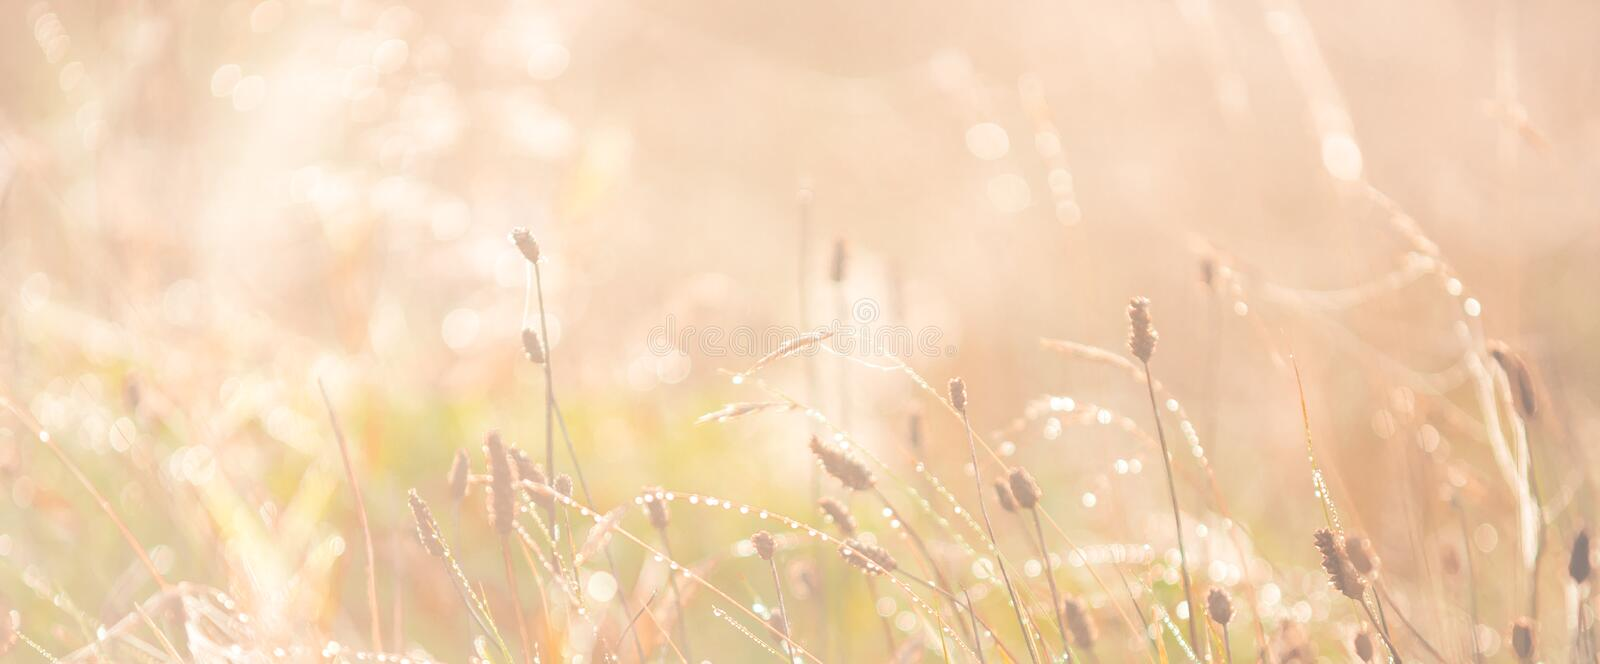 Morning meadow - fresh grass, raindrops, spider webs, sunlight background, nature background stock photos